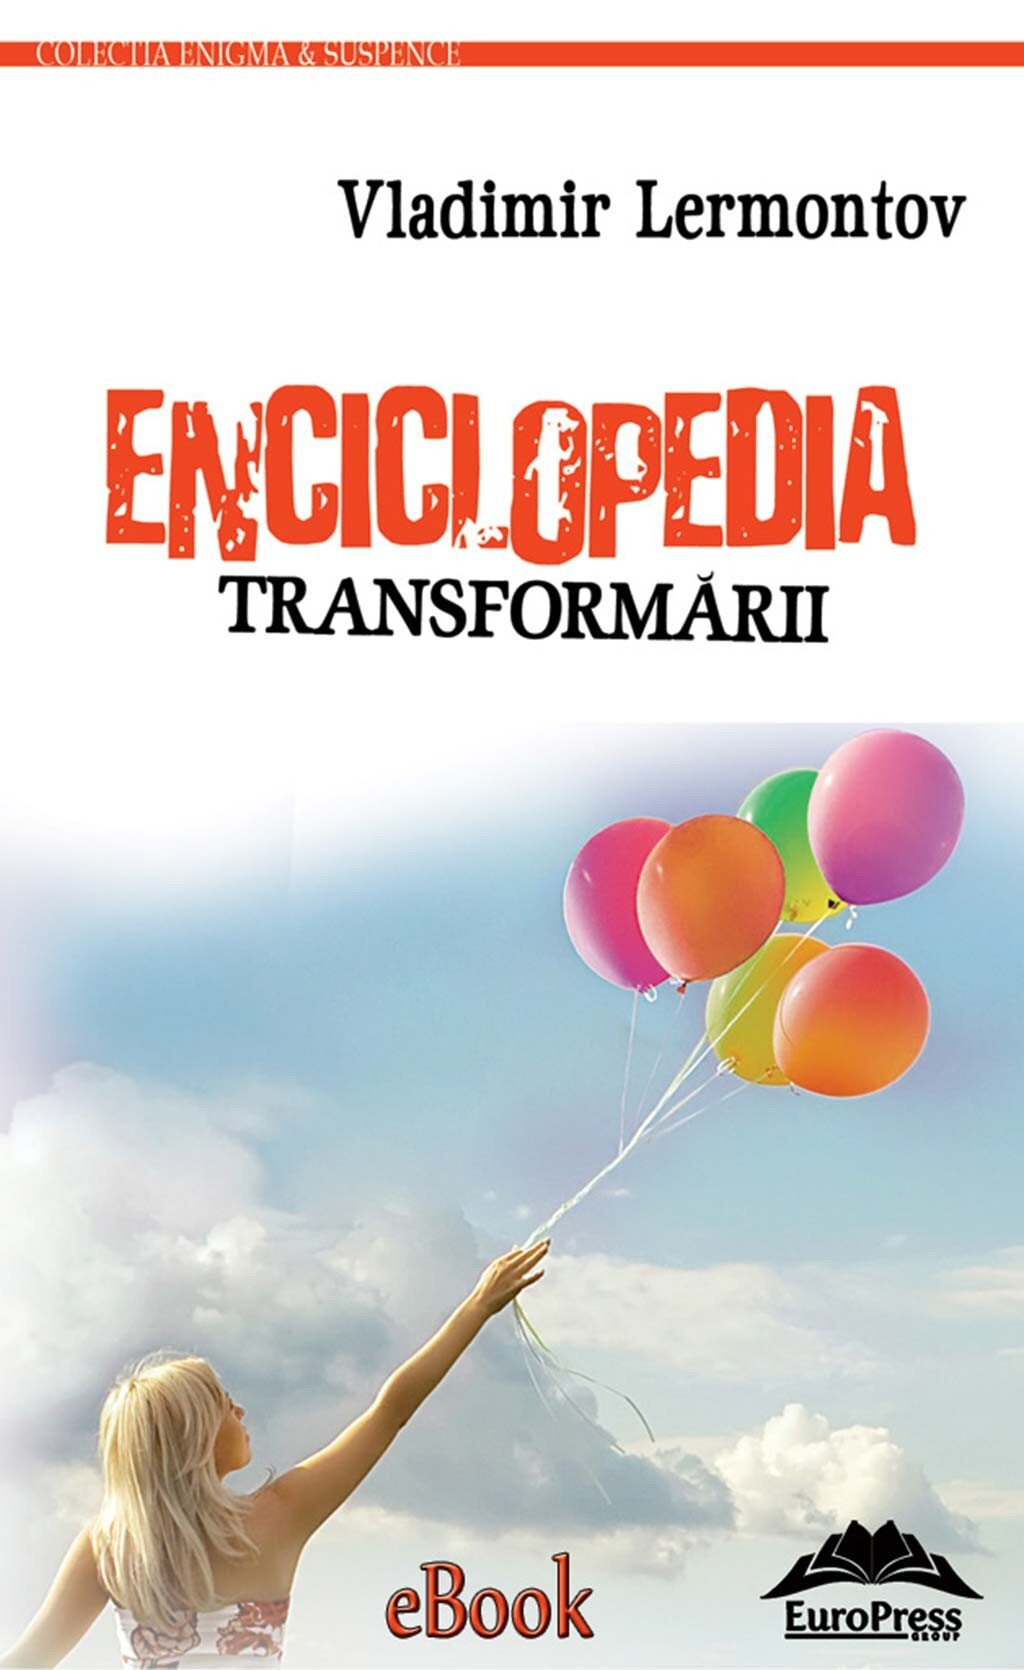 Enciclopedia transformarii (eBook)